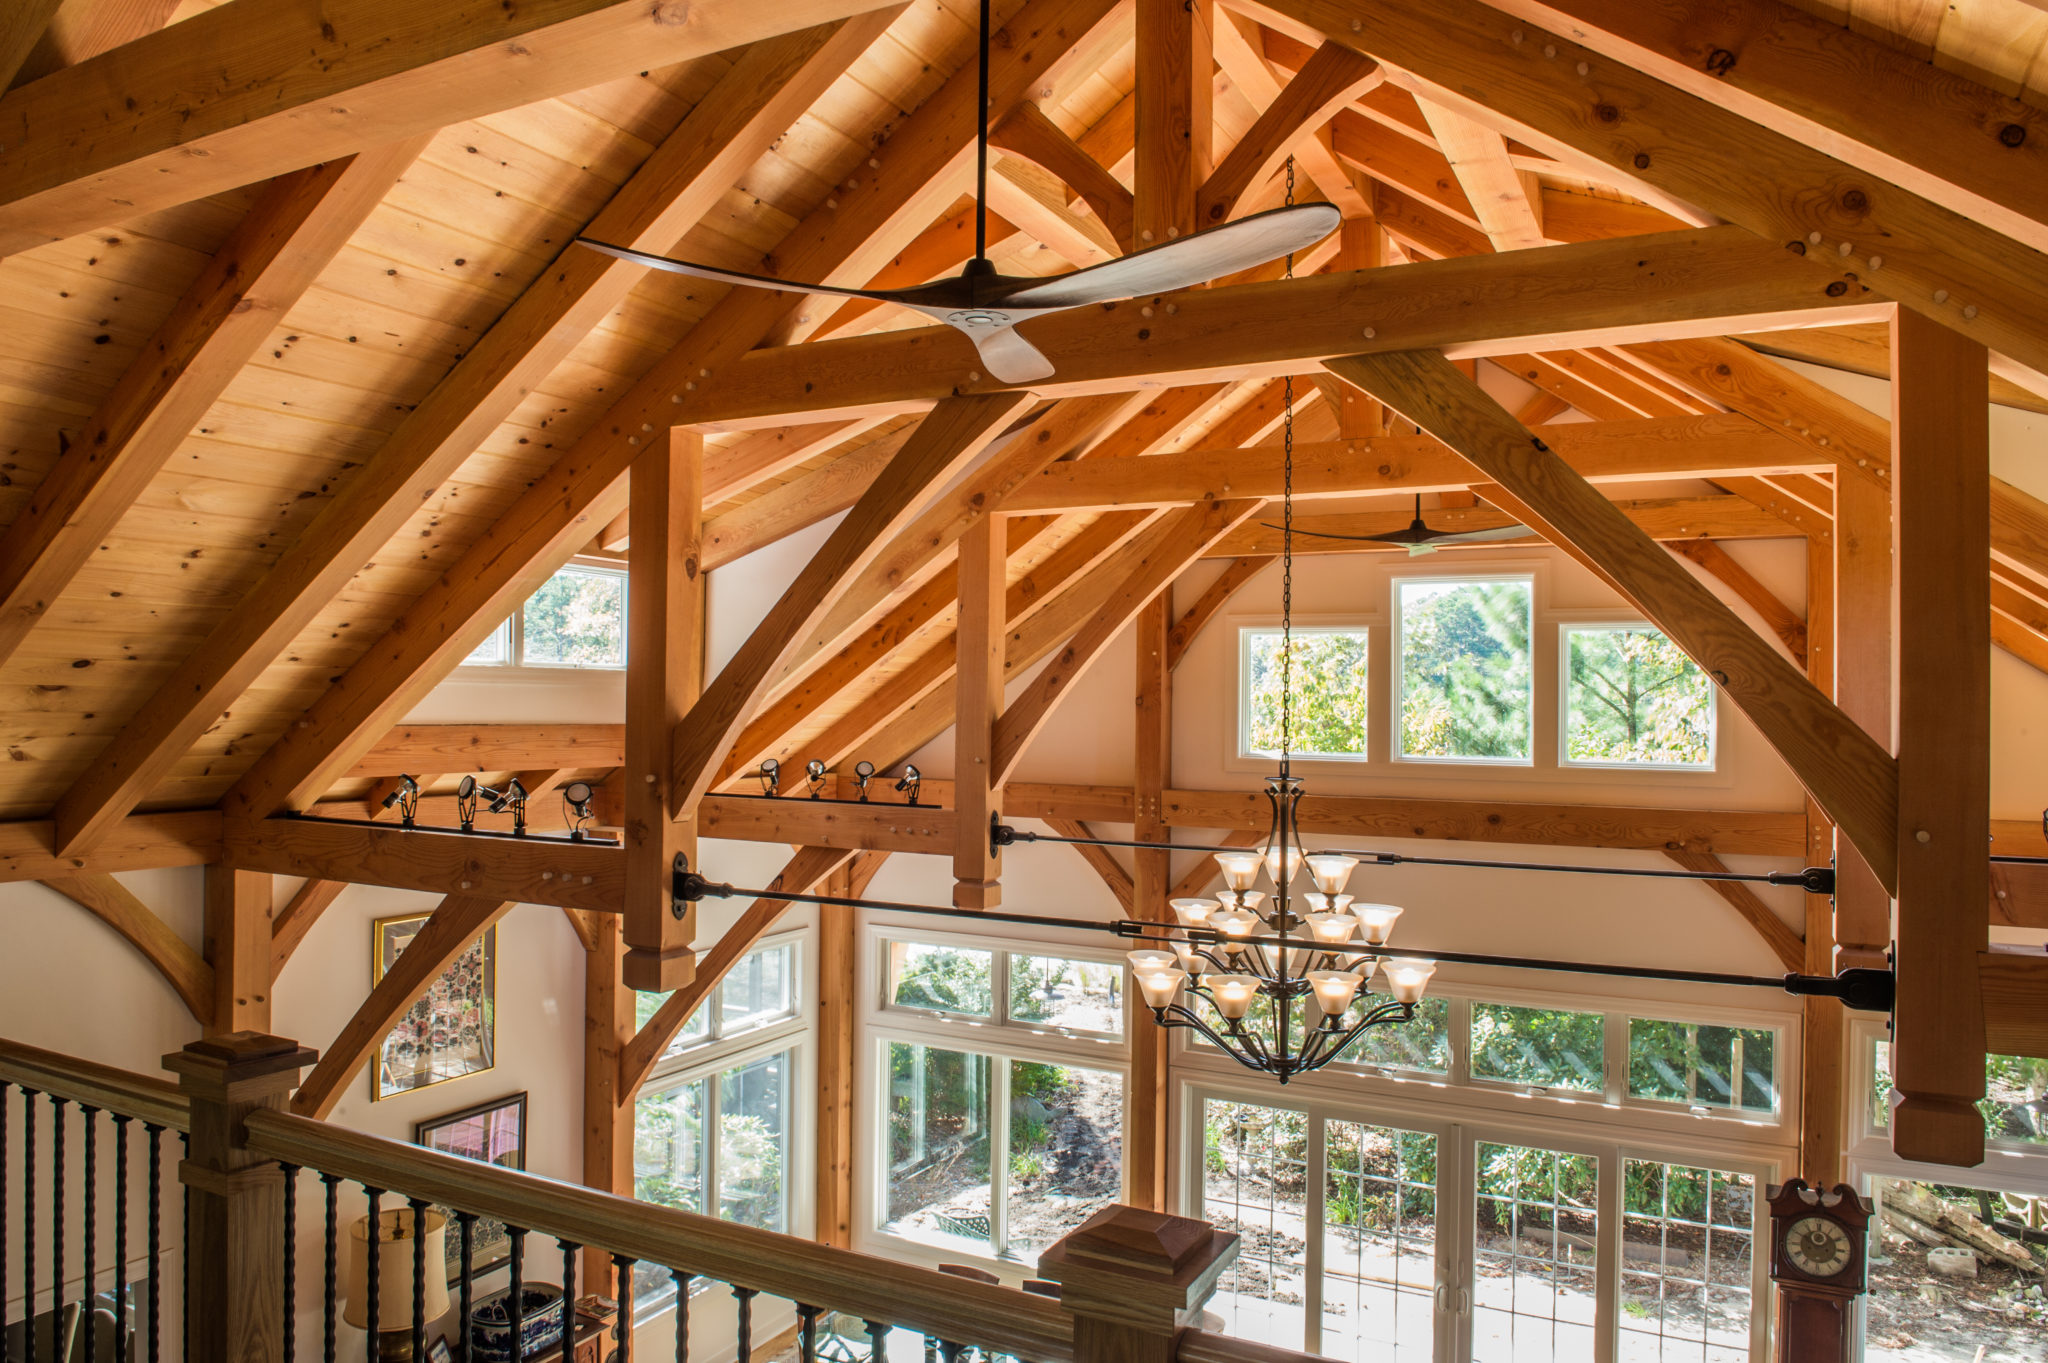 Why build a timber frame home